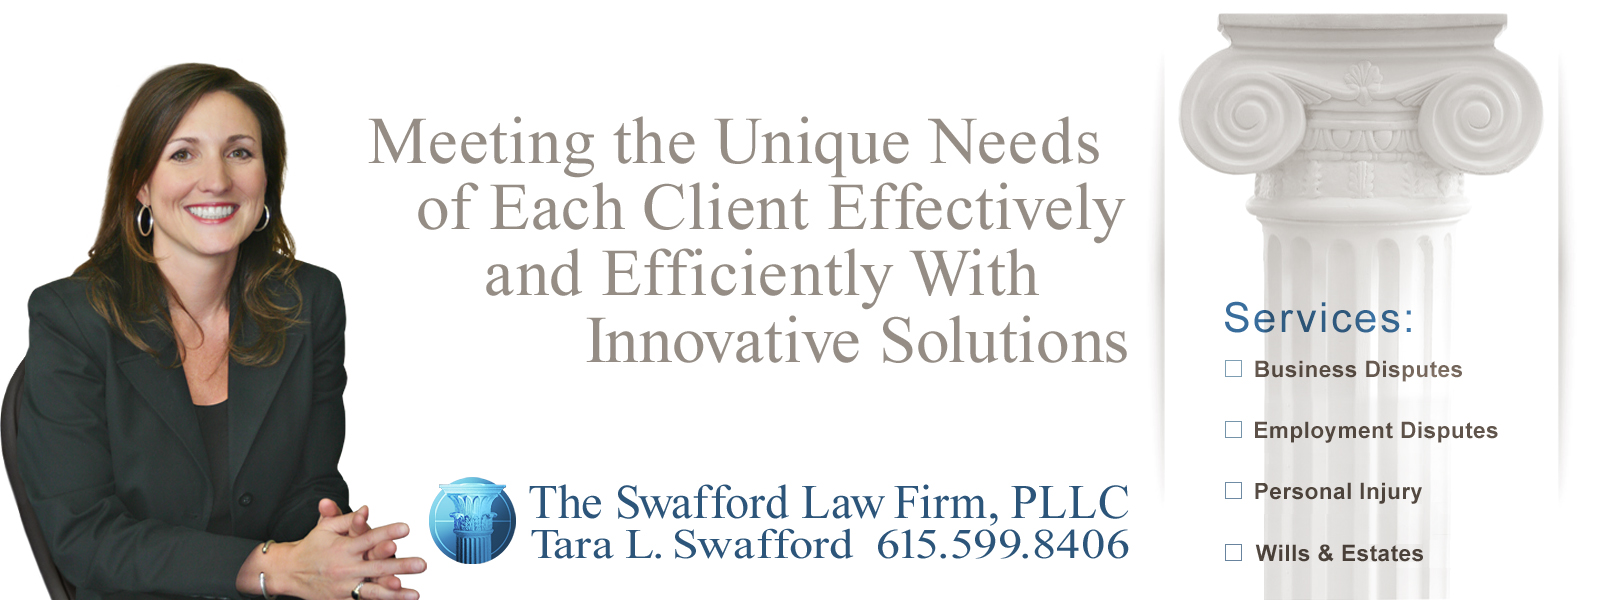 Swafford Law Firm